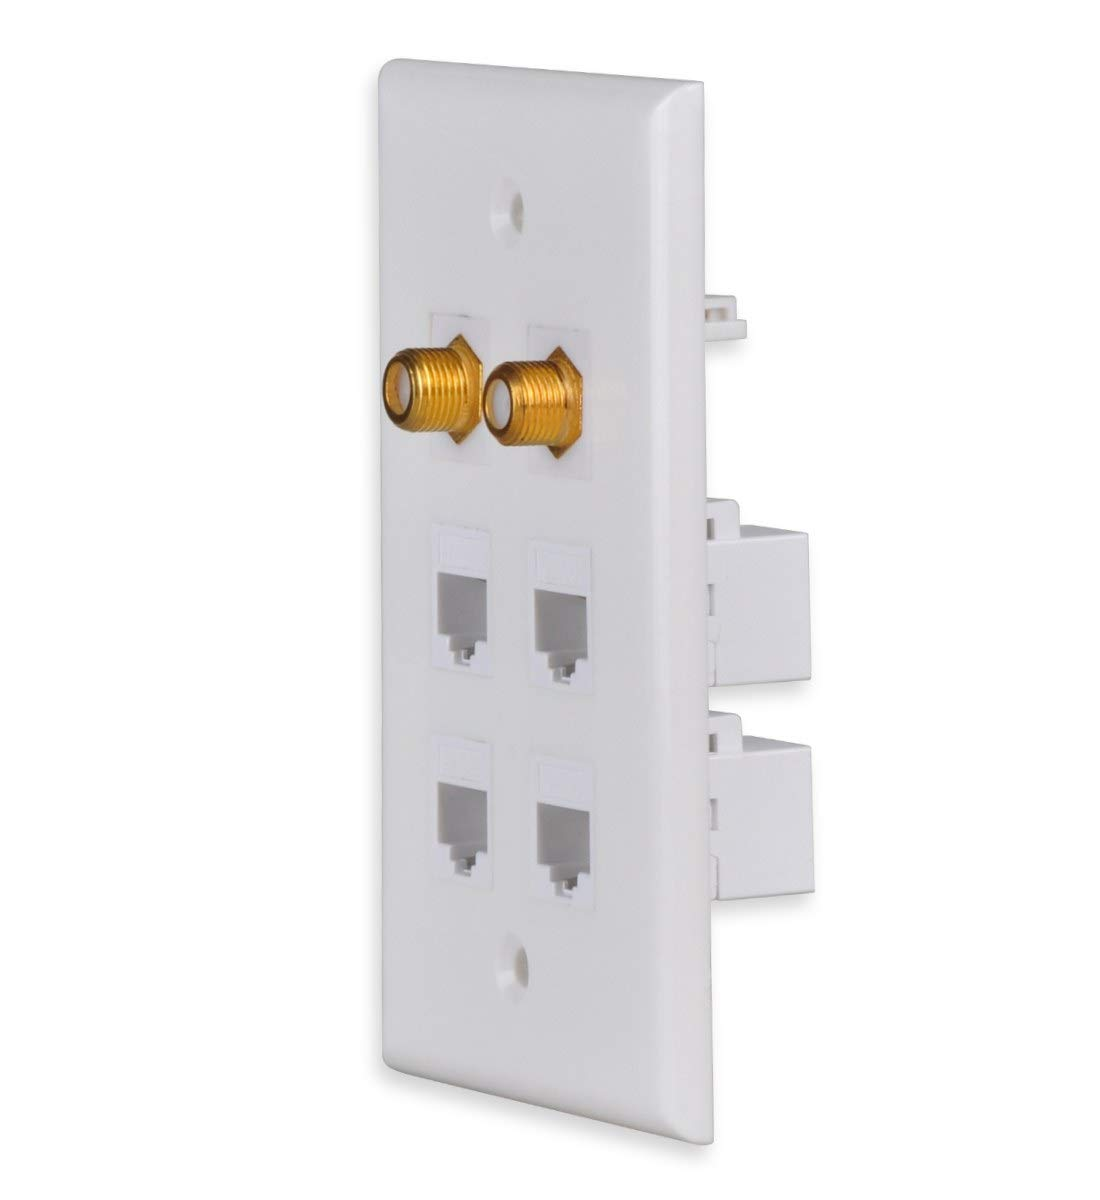 DCFun Ethernet Wall Plate RJ45 CAT6 Network Keystone Jack Inserts Female Connector for Wallplate Pack of 2